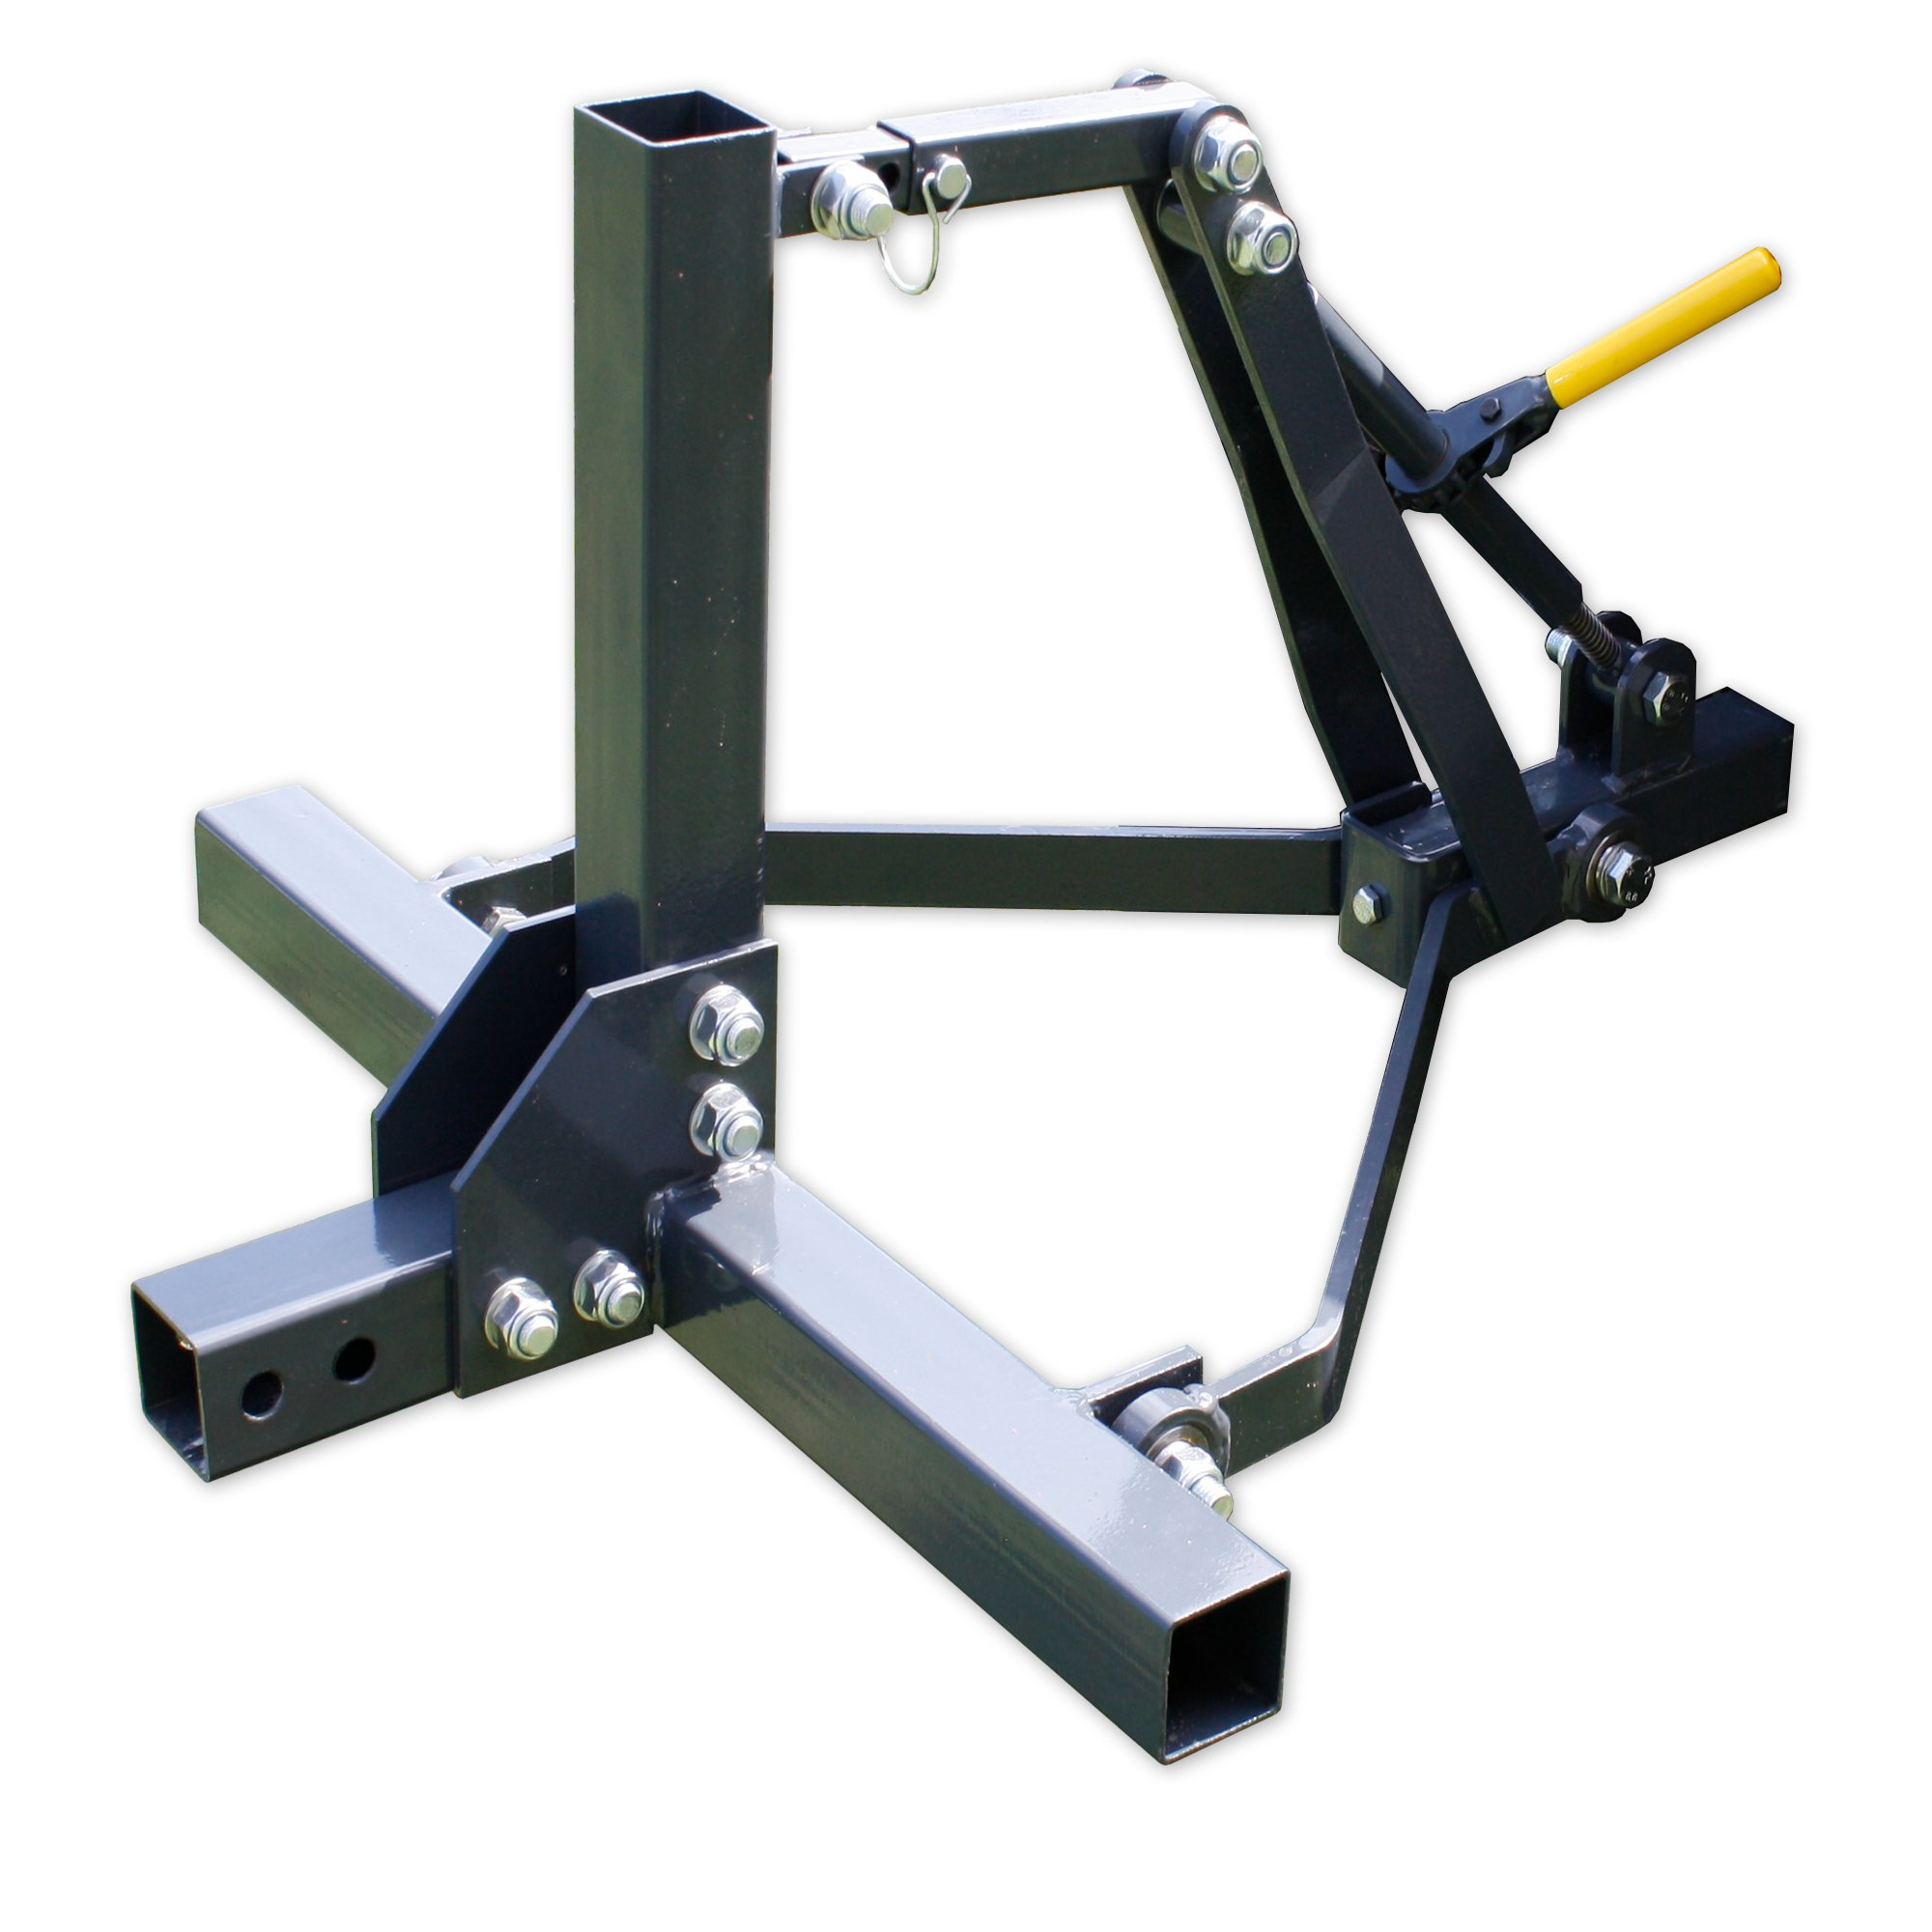 Copper Ridge Outdoors ATV/UTV 3 Point Lift System - ATV Implement Attachment System, Height and Angle Adjustments, Tough Steel Construction, Farming and Food Plot Attachments by Copper Ridge Outdoors